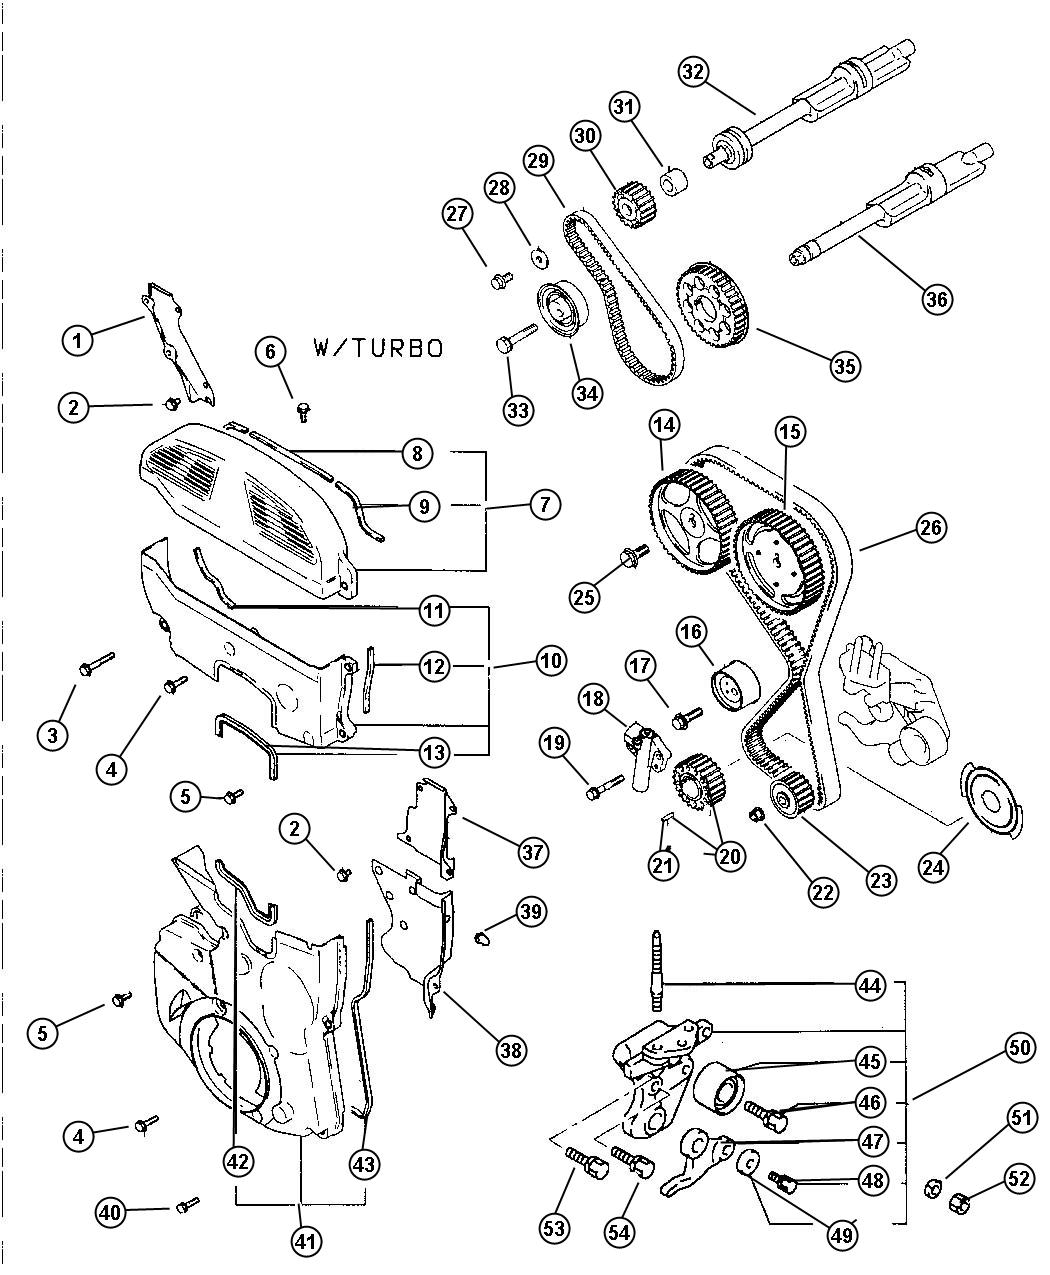 92 toyota tercel parts diagram  toyota  auto wiring diagram